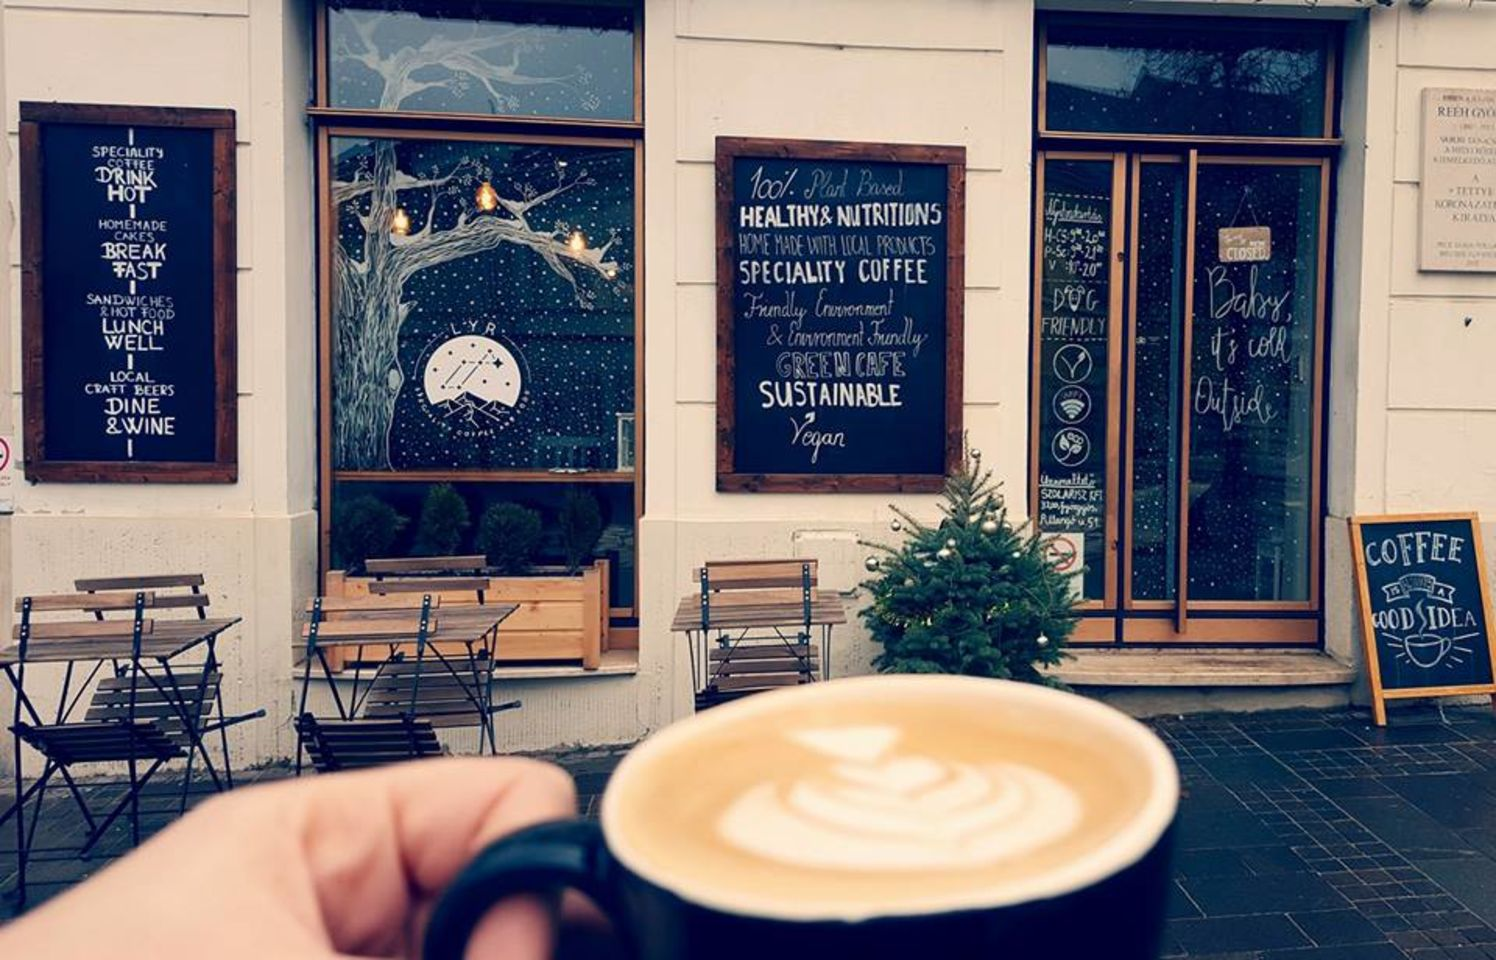 A photo of LYR Speciality Coffee & Food